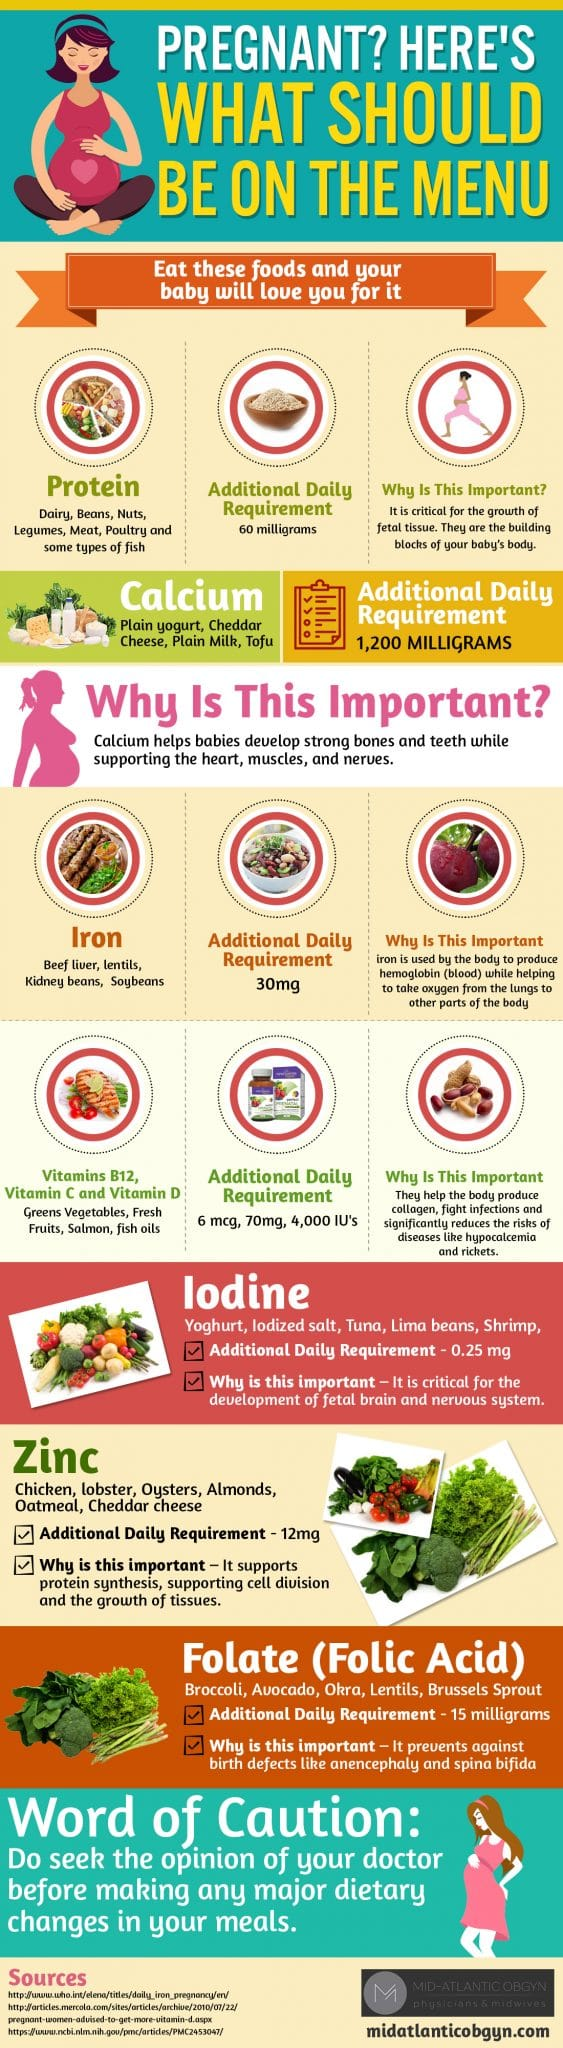 Pregnancy Nutrition - 6 of the Best Pregnancy Foods for Women